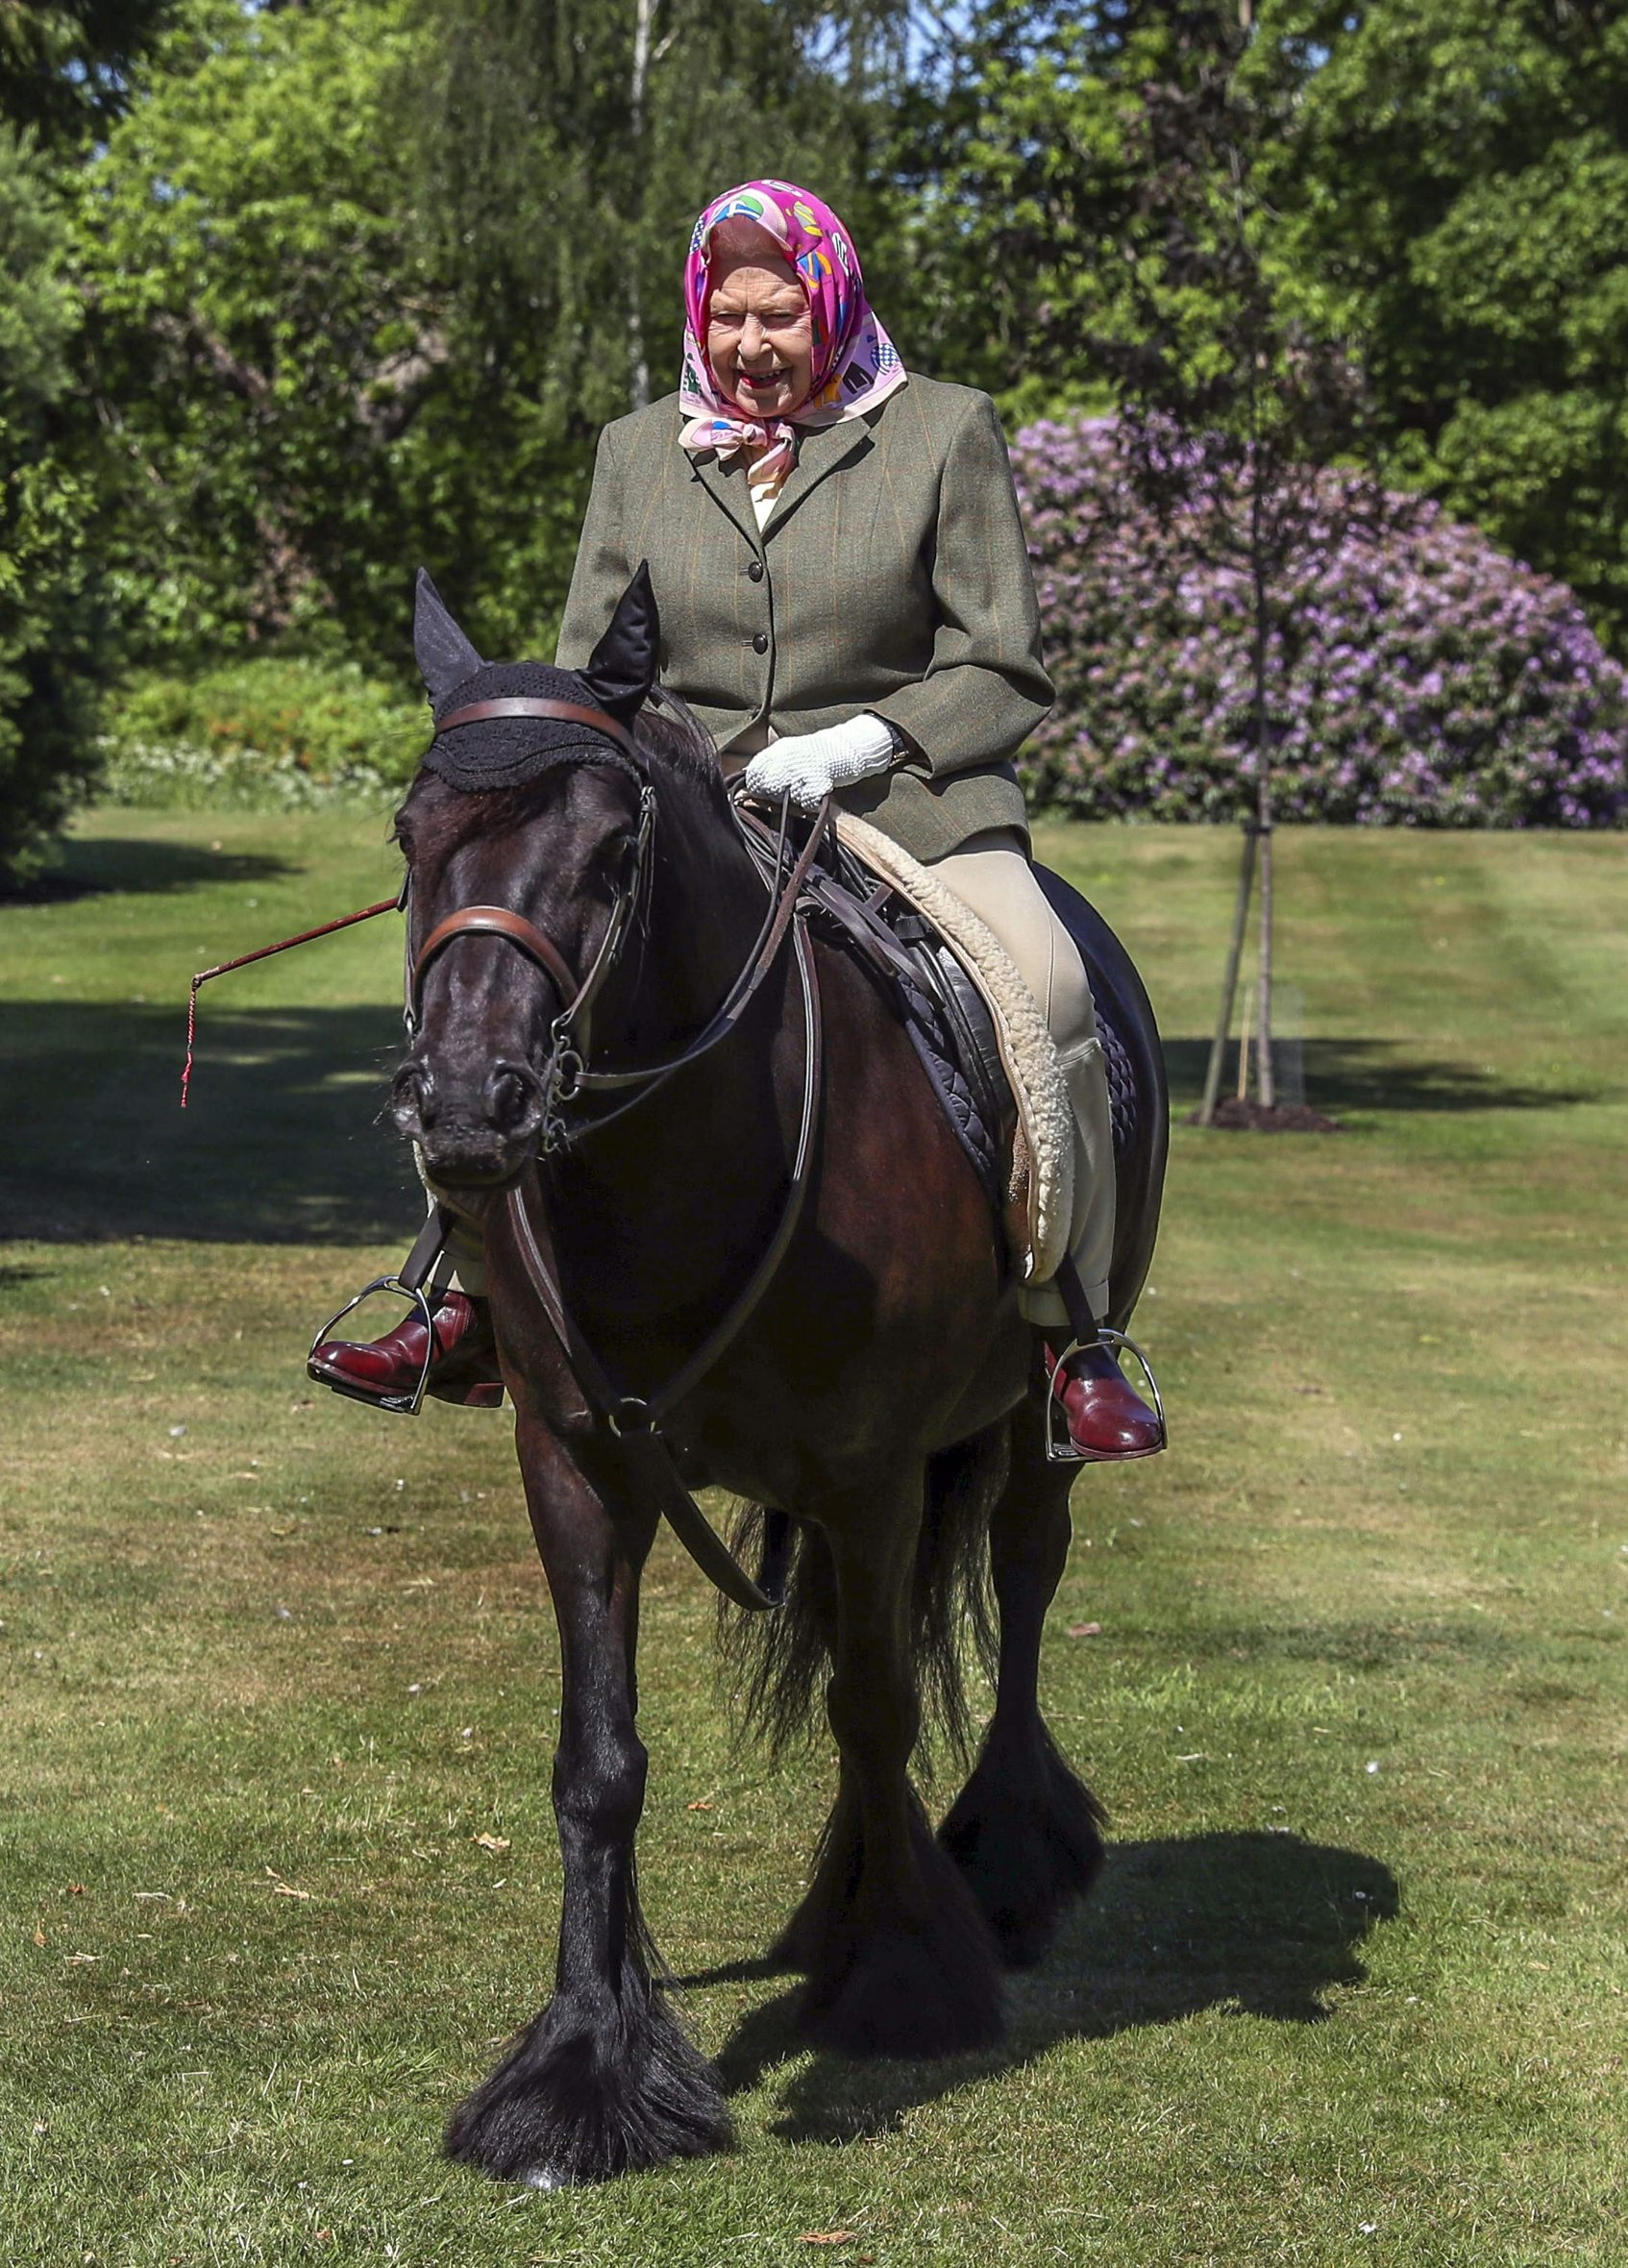 Britain's Queen Elizabeth II rides Balmoral Fern, a 14-year-old Fell Pony, in Windsor Home Park, west of London, over the weekend of May 30 and May 31, 2020. (Photo by Steve Parsons / POOL / AFP)